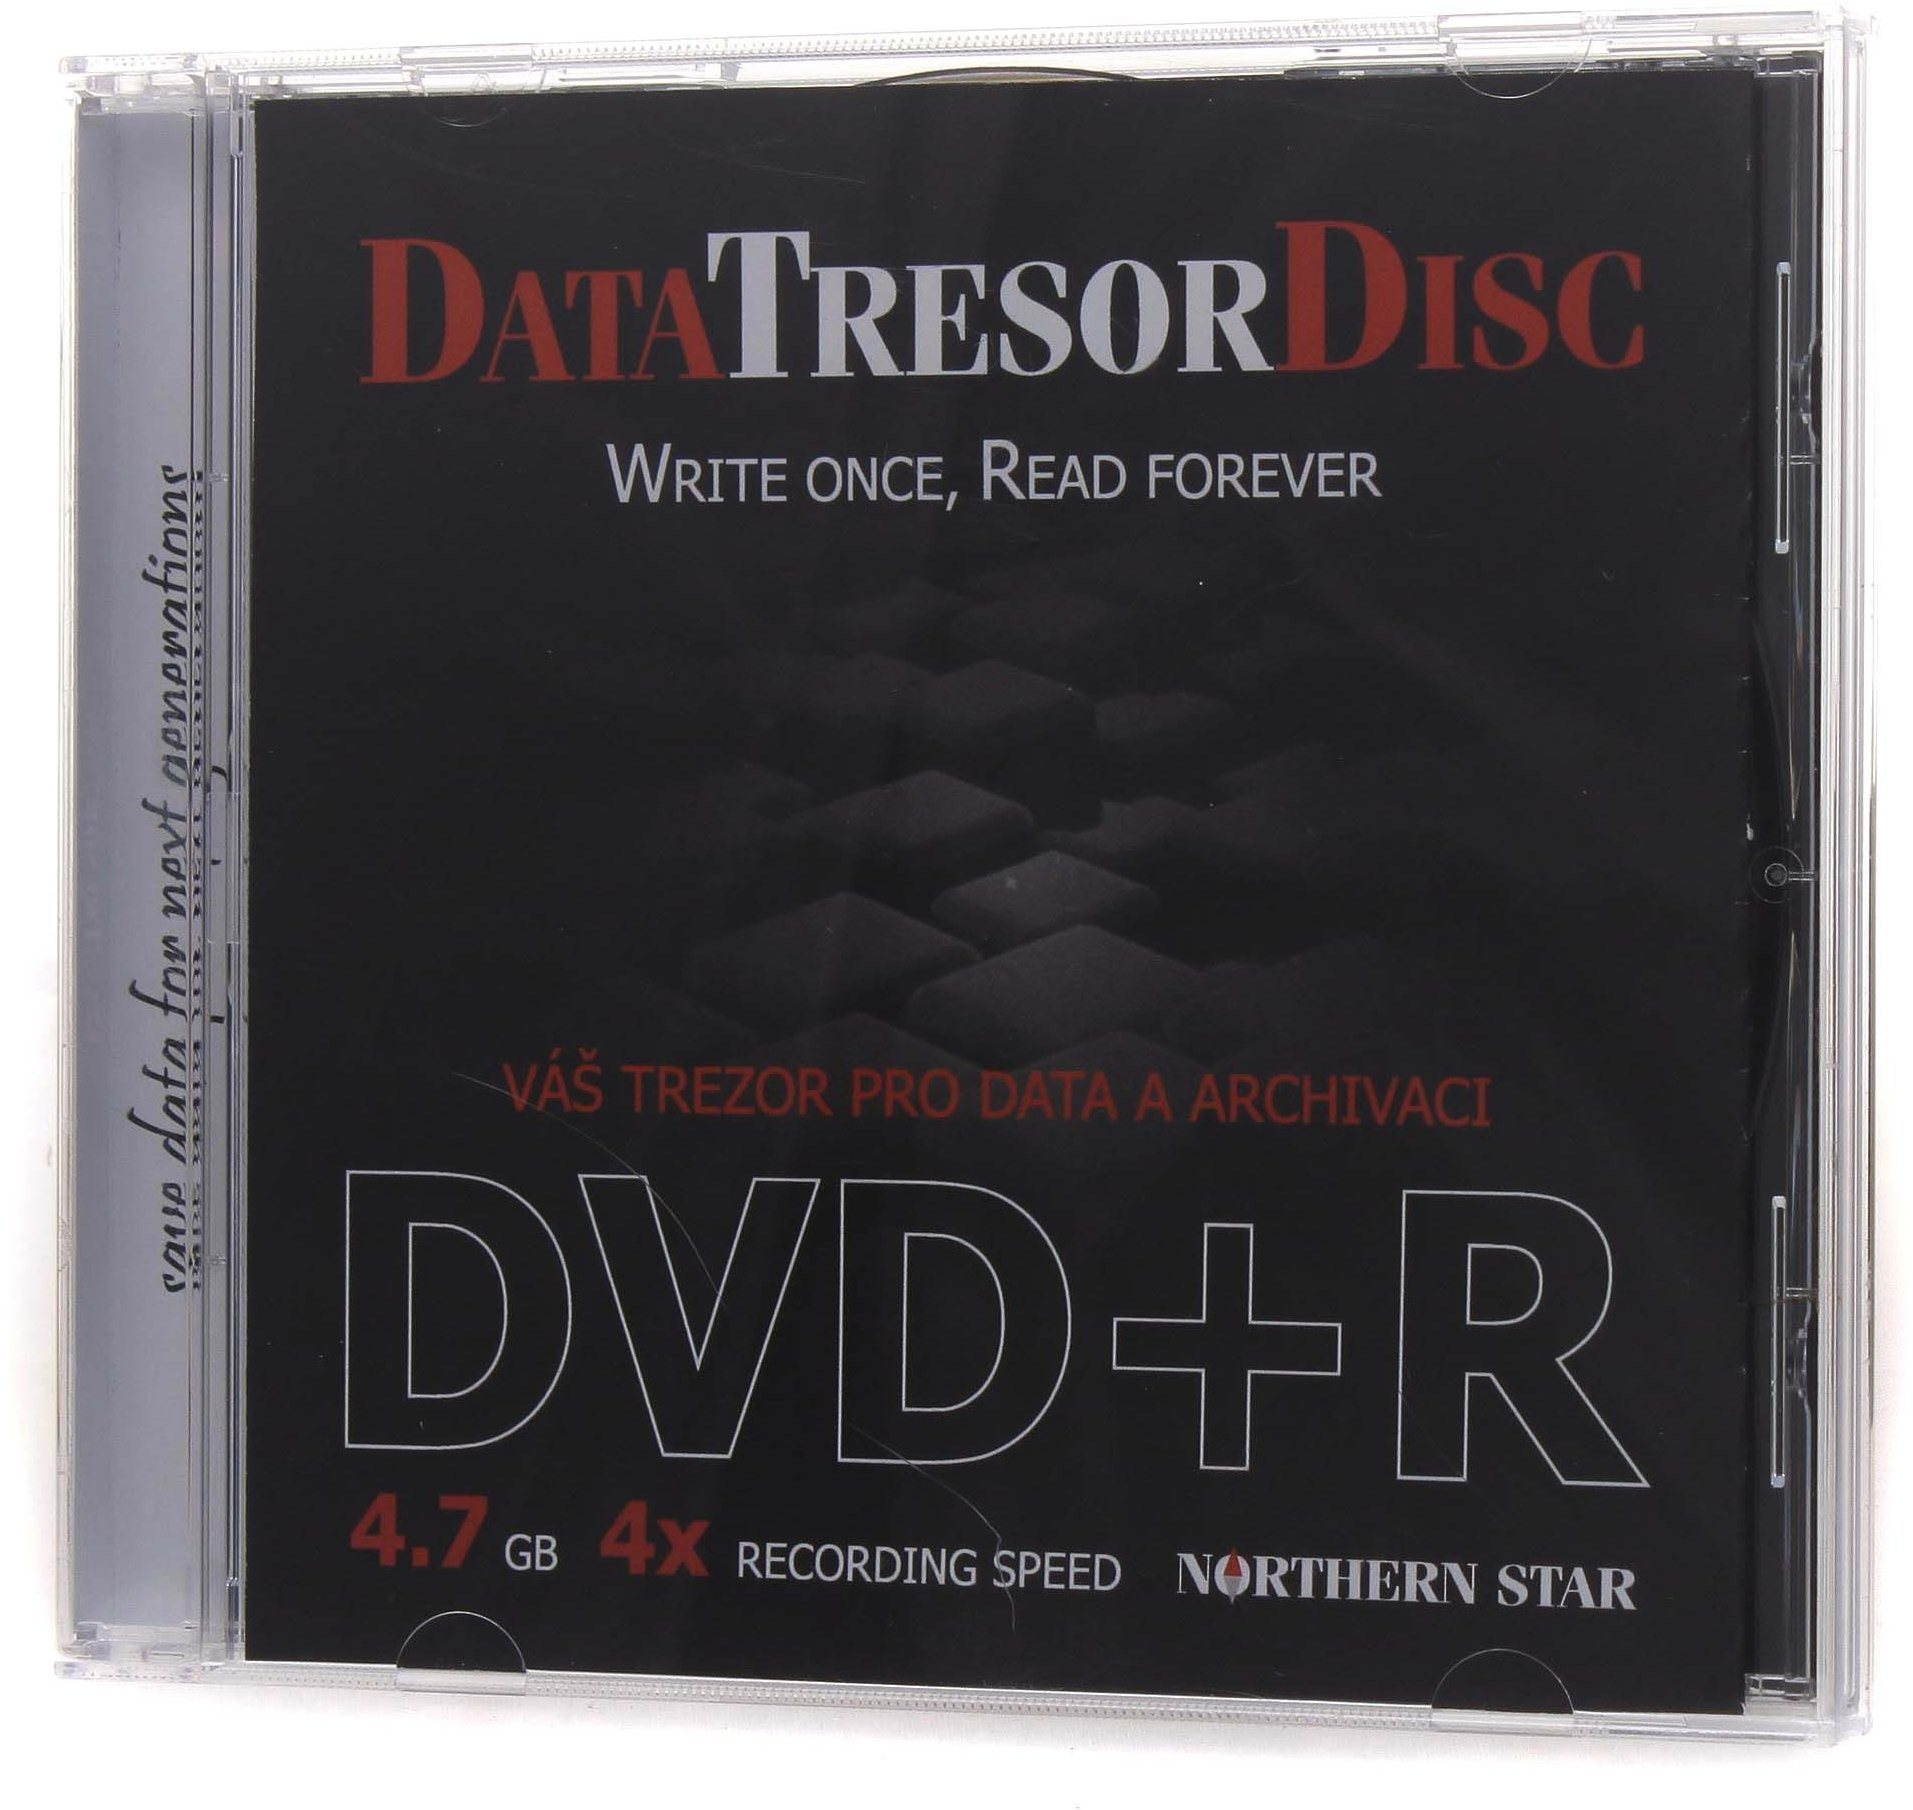 DATA TRESOR DISC DVD+R 1 db dobozban